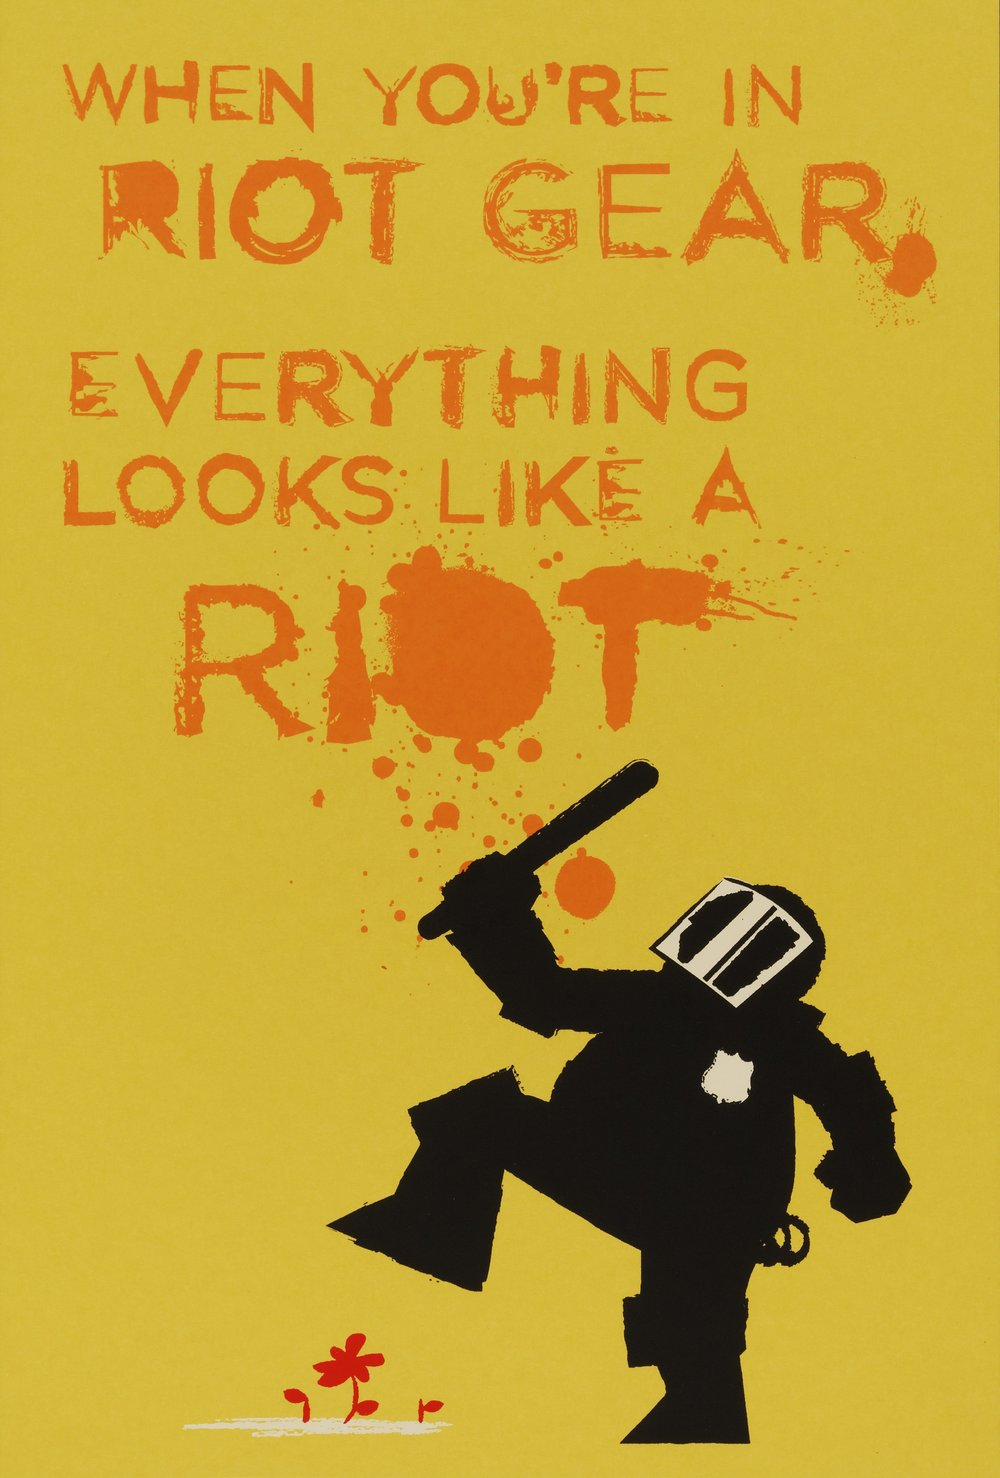 John Emerson, American, born 1973 When in Riot Gear, from the Occuprint Sponsor Portfolio 2012 Screenprint on French paper 18/100 Sheet: 18 1/8 x 12 1/16 in. (46 x 30.7 cm) Hood Museum of Art, Dartmouth College: Purchased through the Contemporary Art Fund; 2012.38.16 © John Emerson